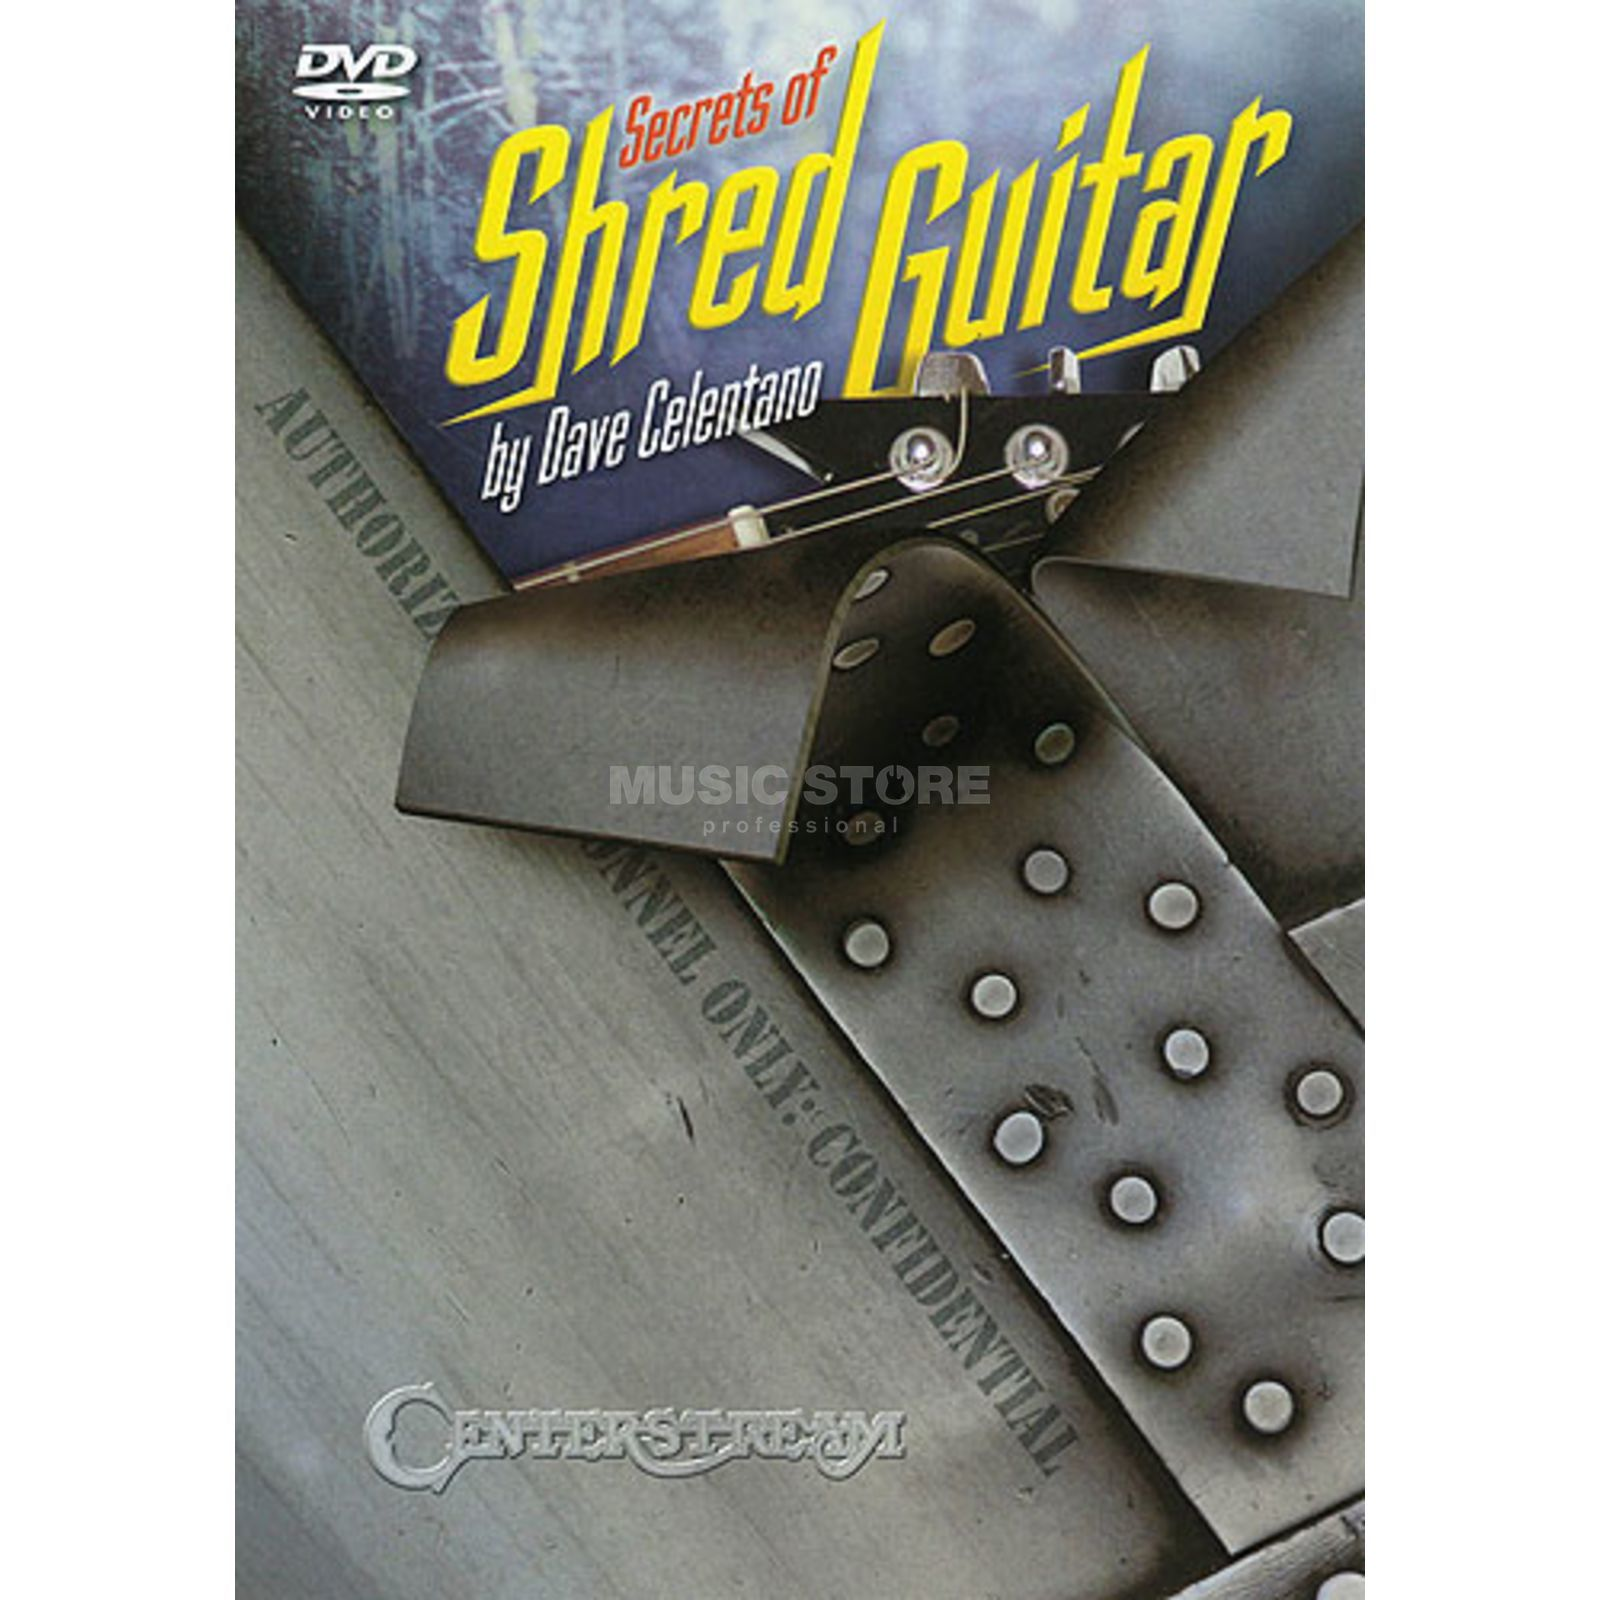 Hal Leonard Secrets Of Shred Guitar DVD Produktbild